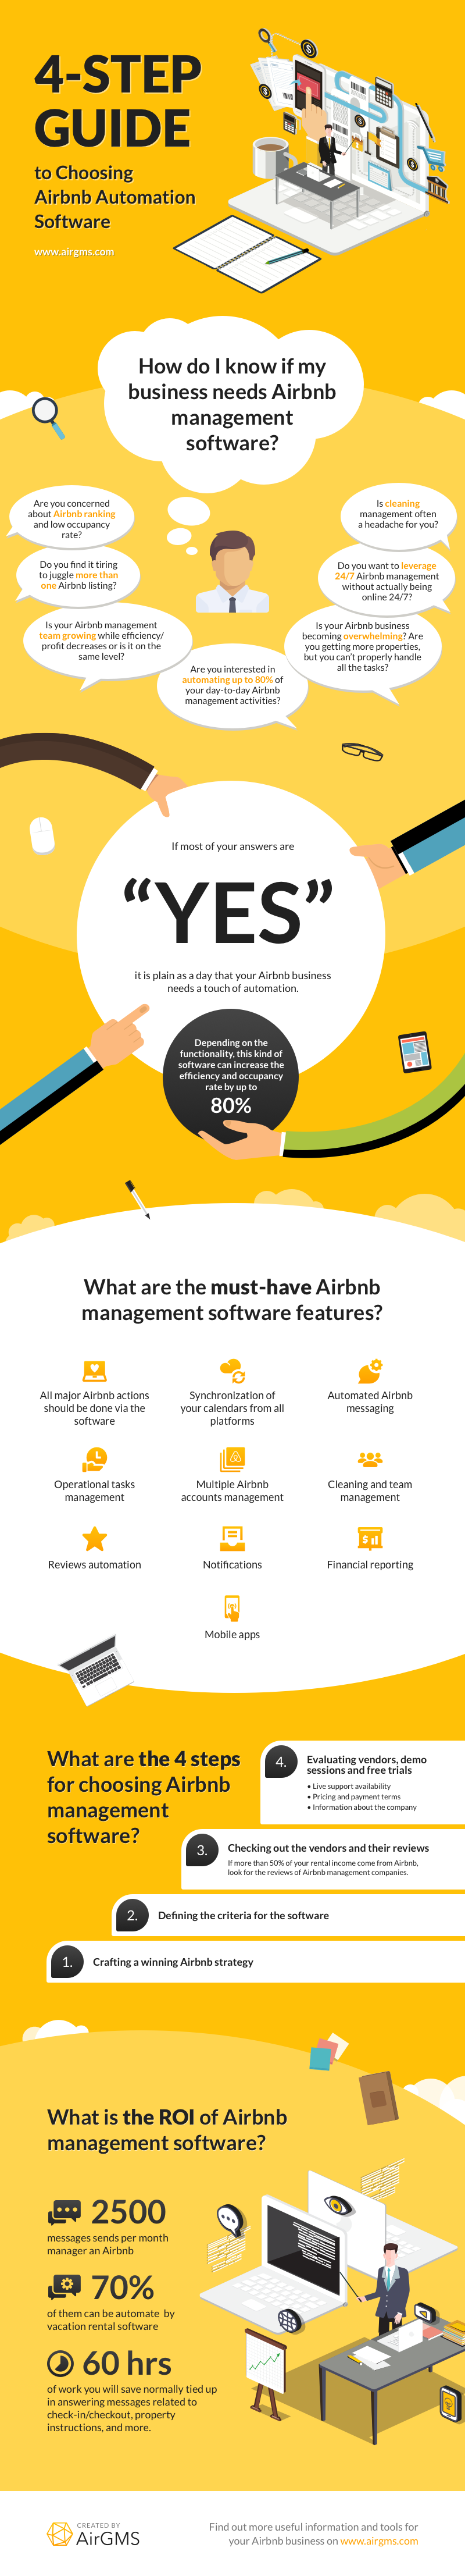 Airbnb Automation software infographic